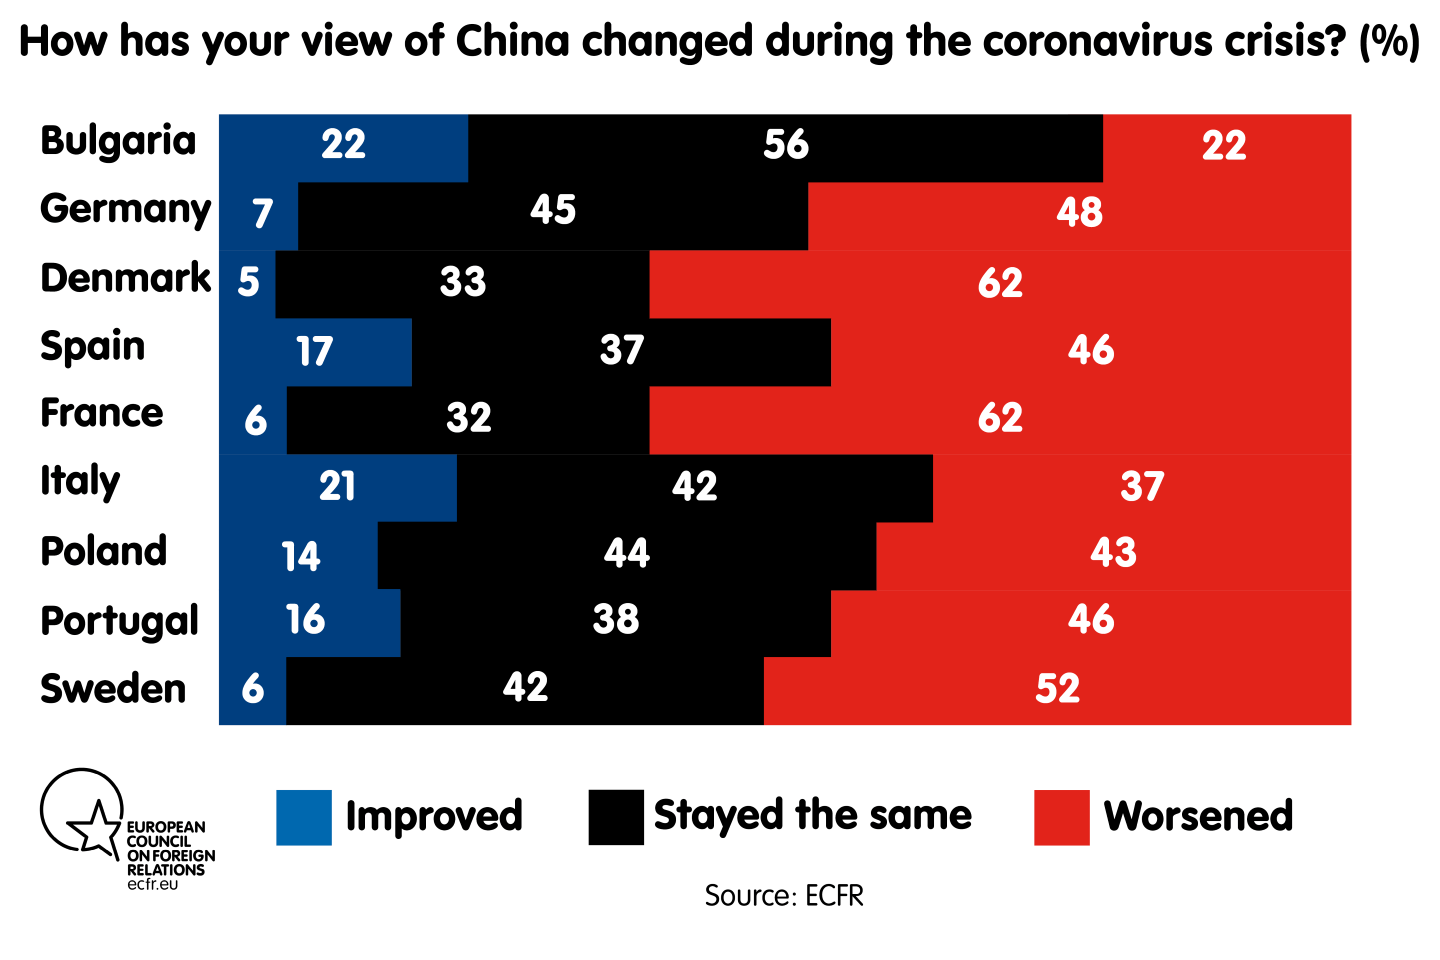 How has your view of China changed during the coronavirus crisis?